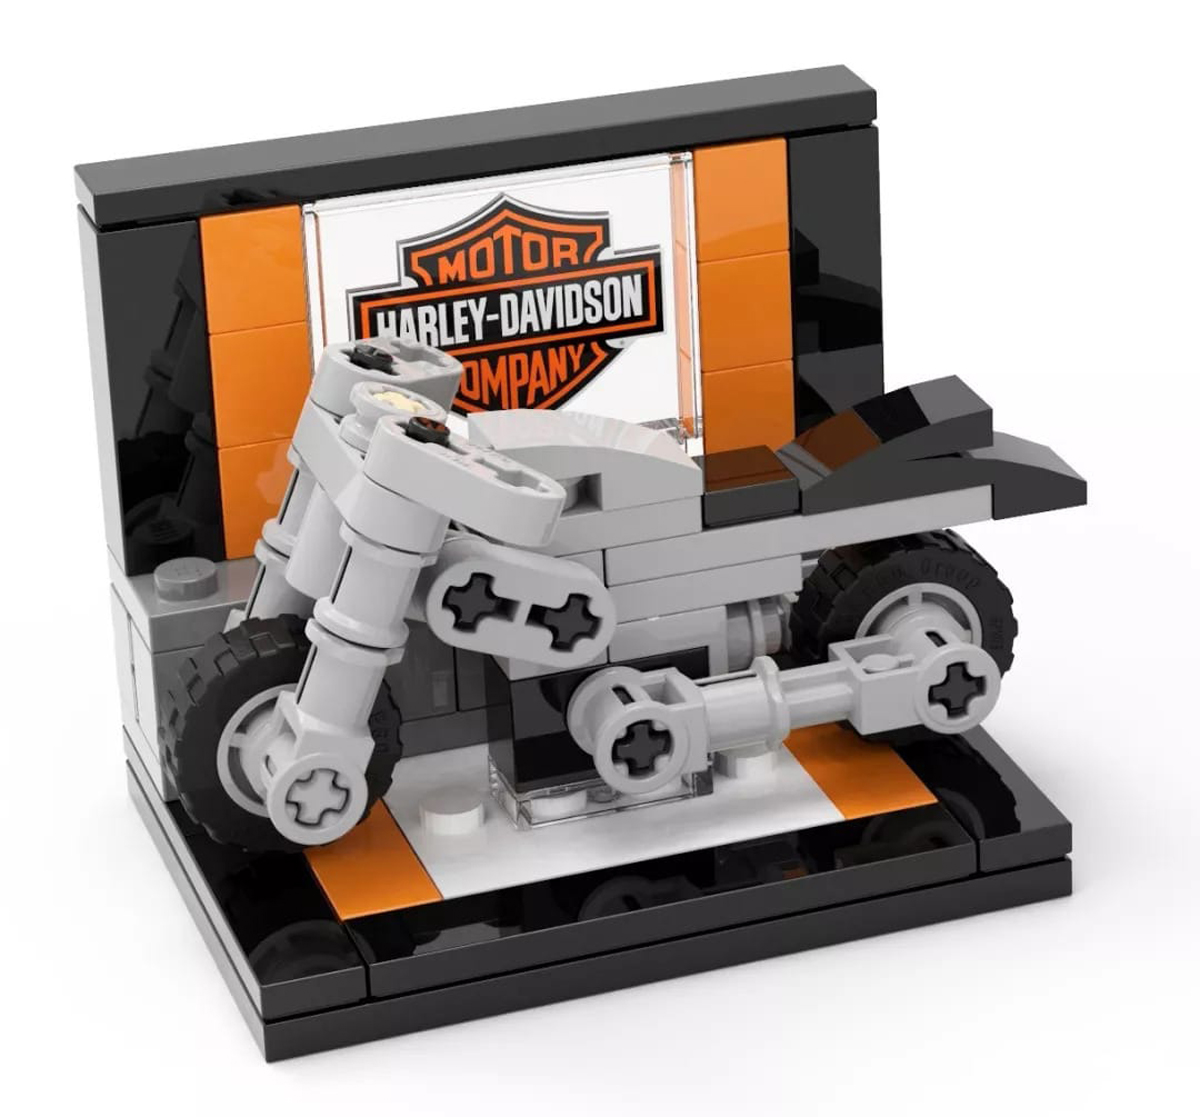 Create Your Own LEGO Harley-Davidson Mini-Build With These Building Instructions